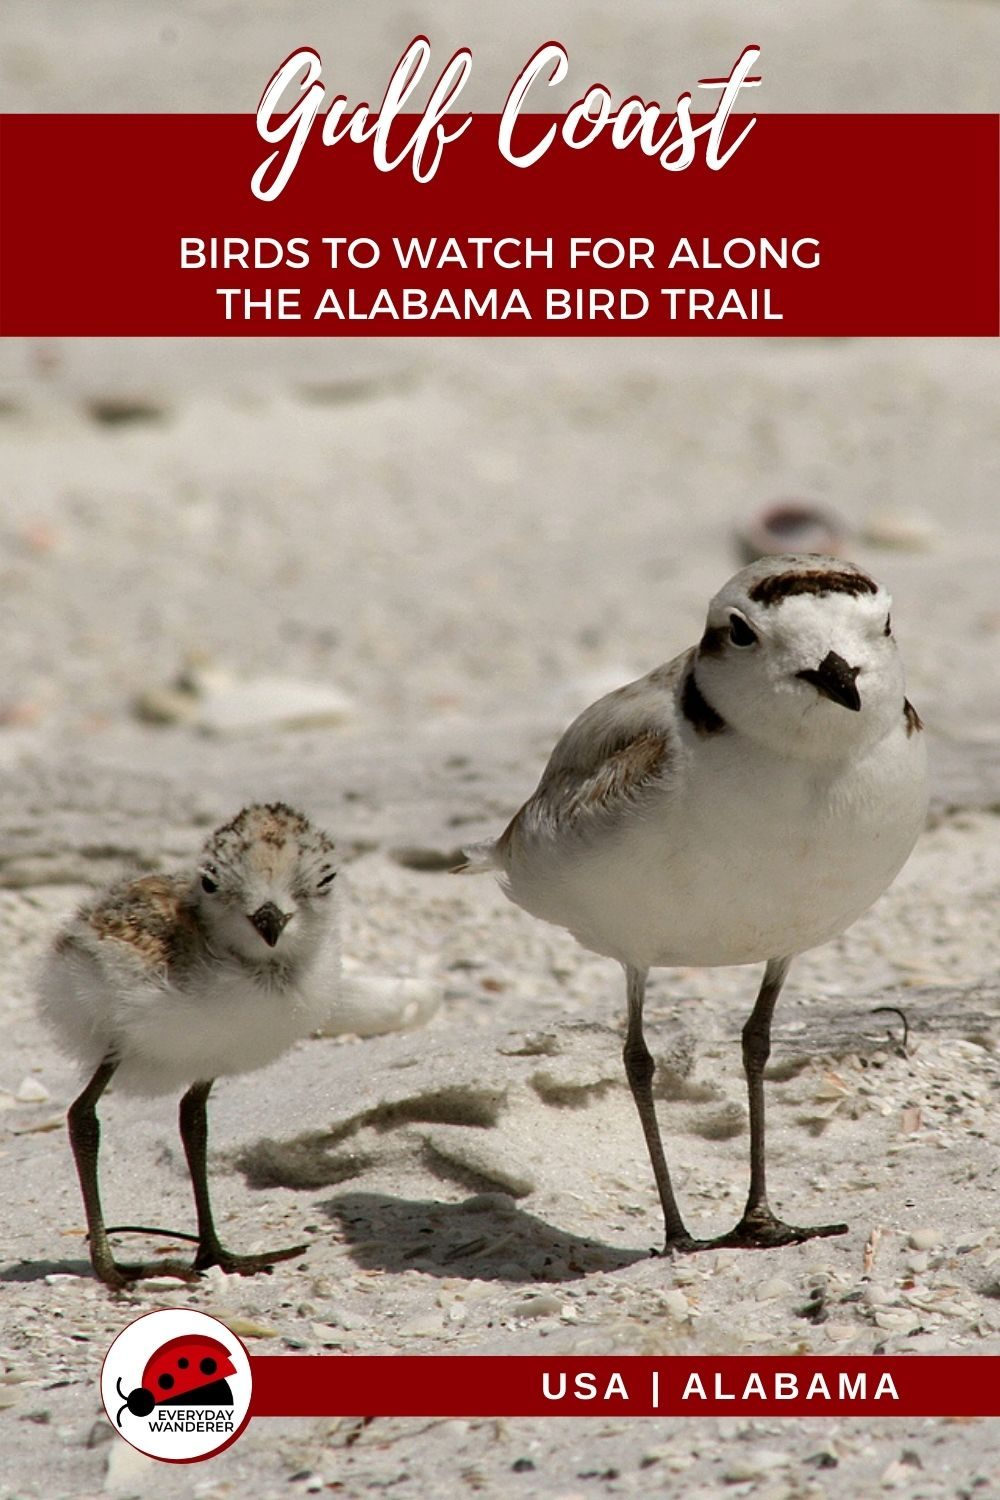 Gulf Coast Birds - Pin 6 - JPG